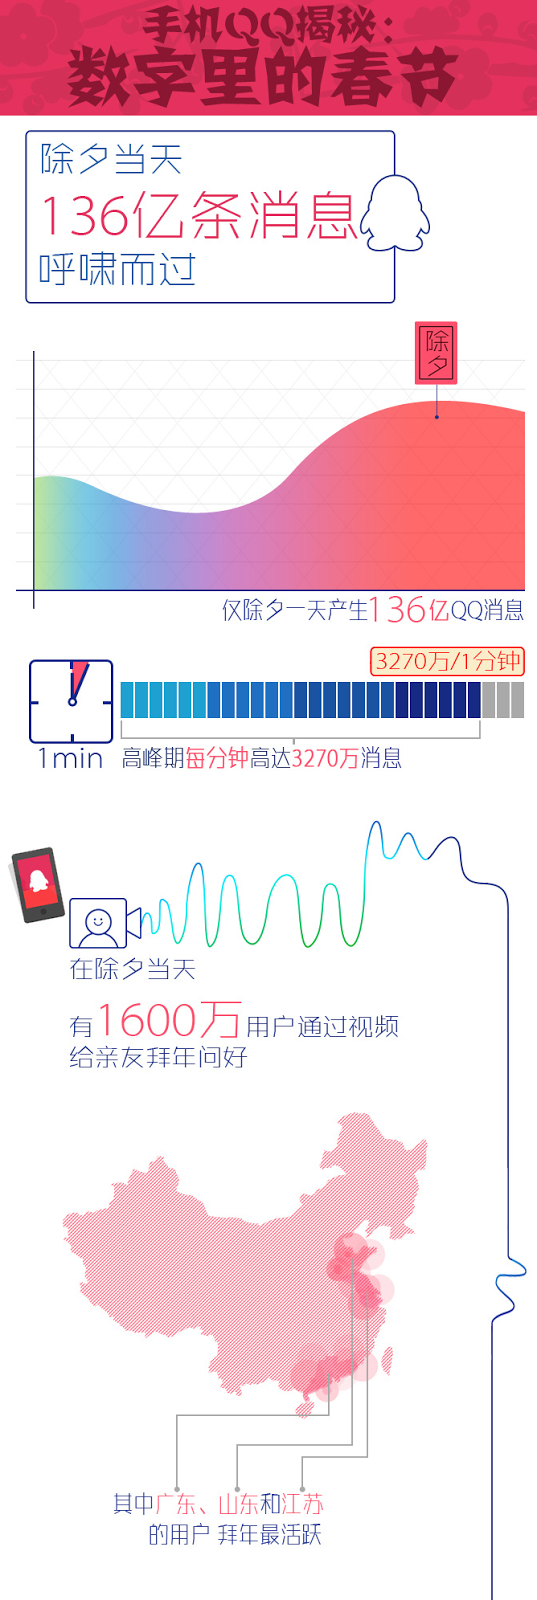 Social Media and Mobile in China: 2014